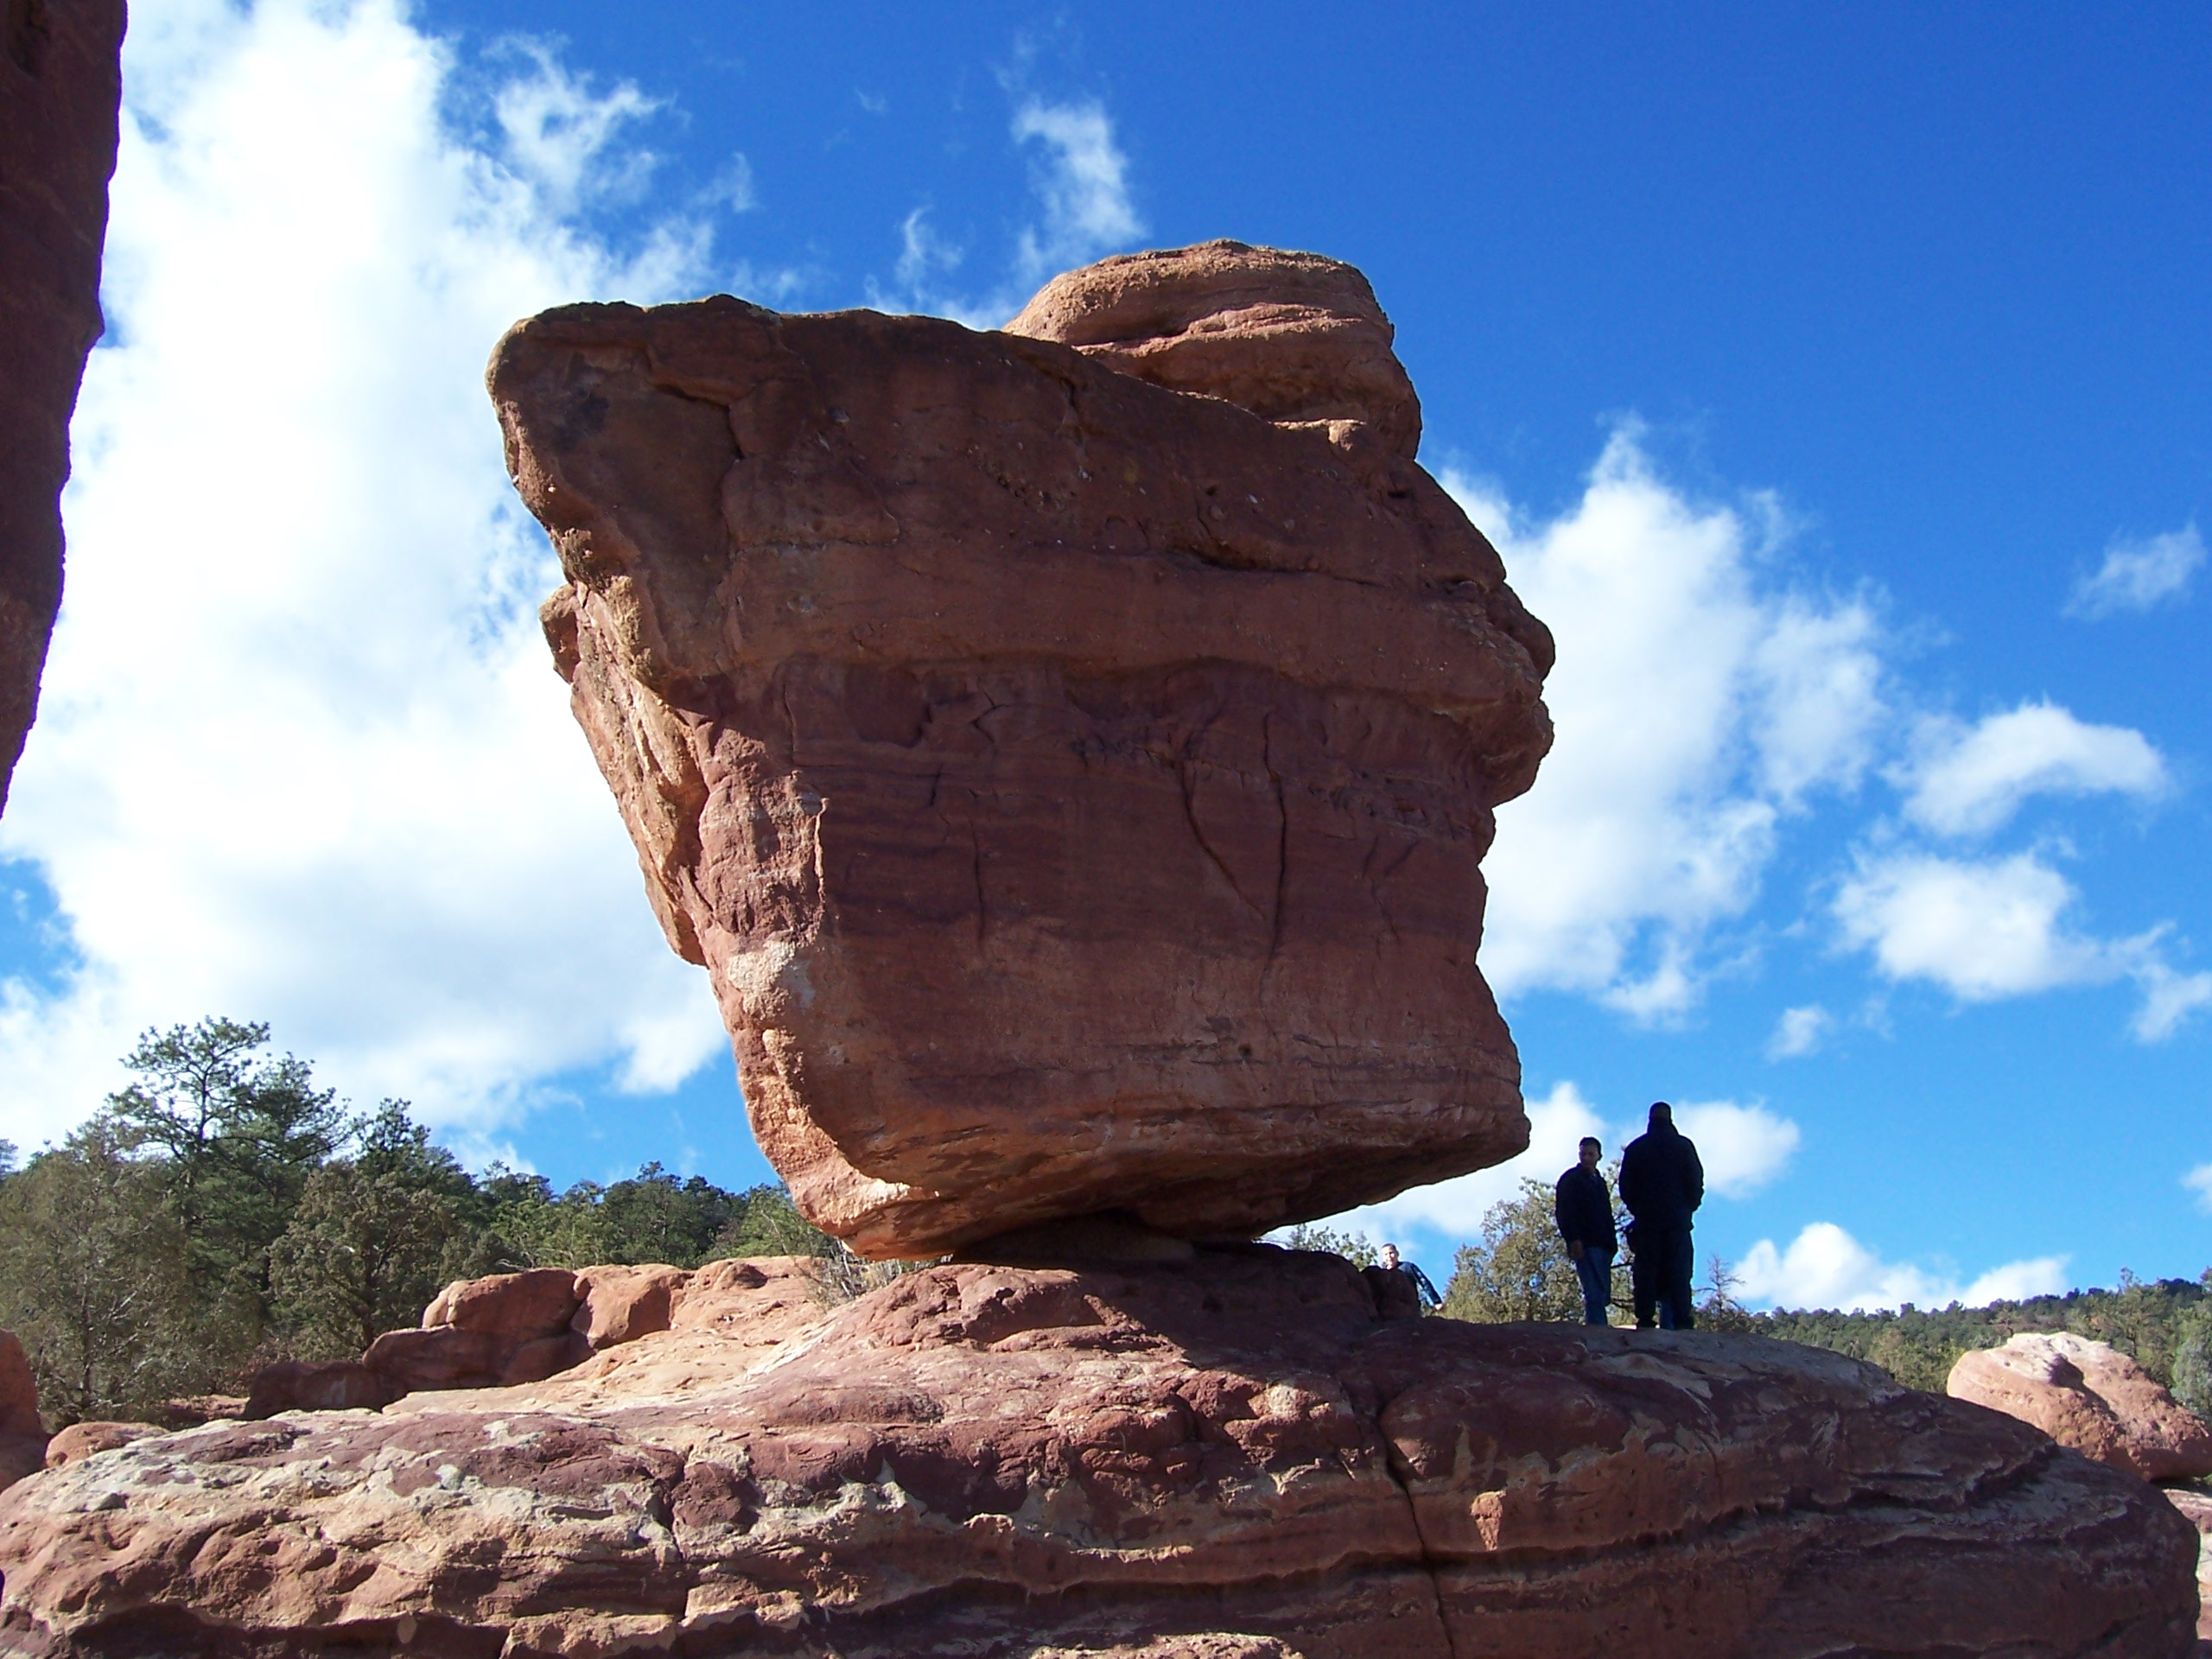 Balanced Rock stands in the Garden of the Gods park in Colorado Springs